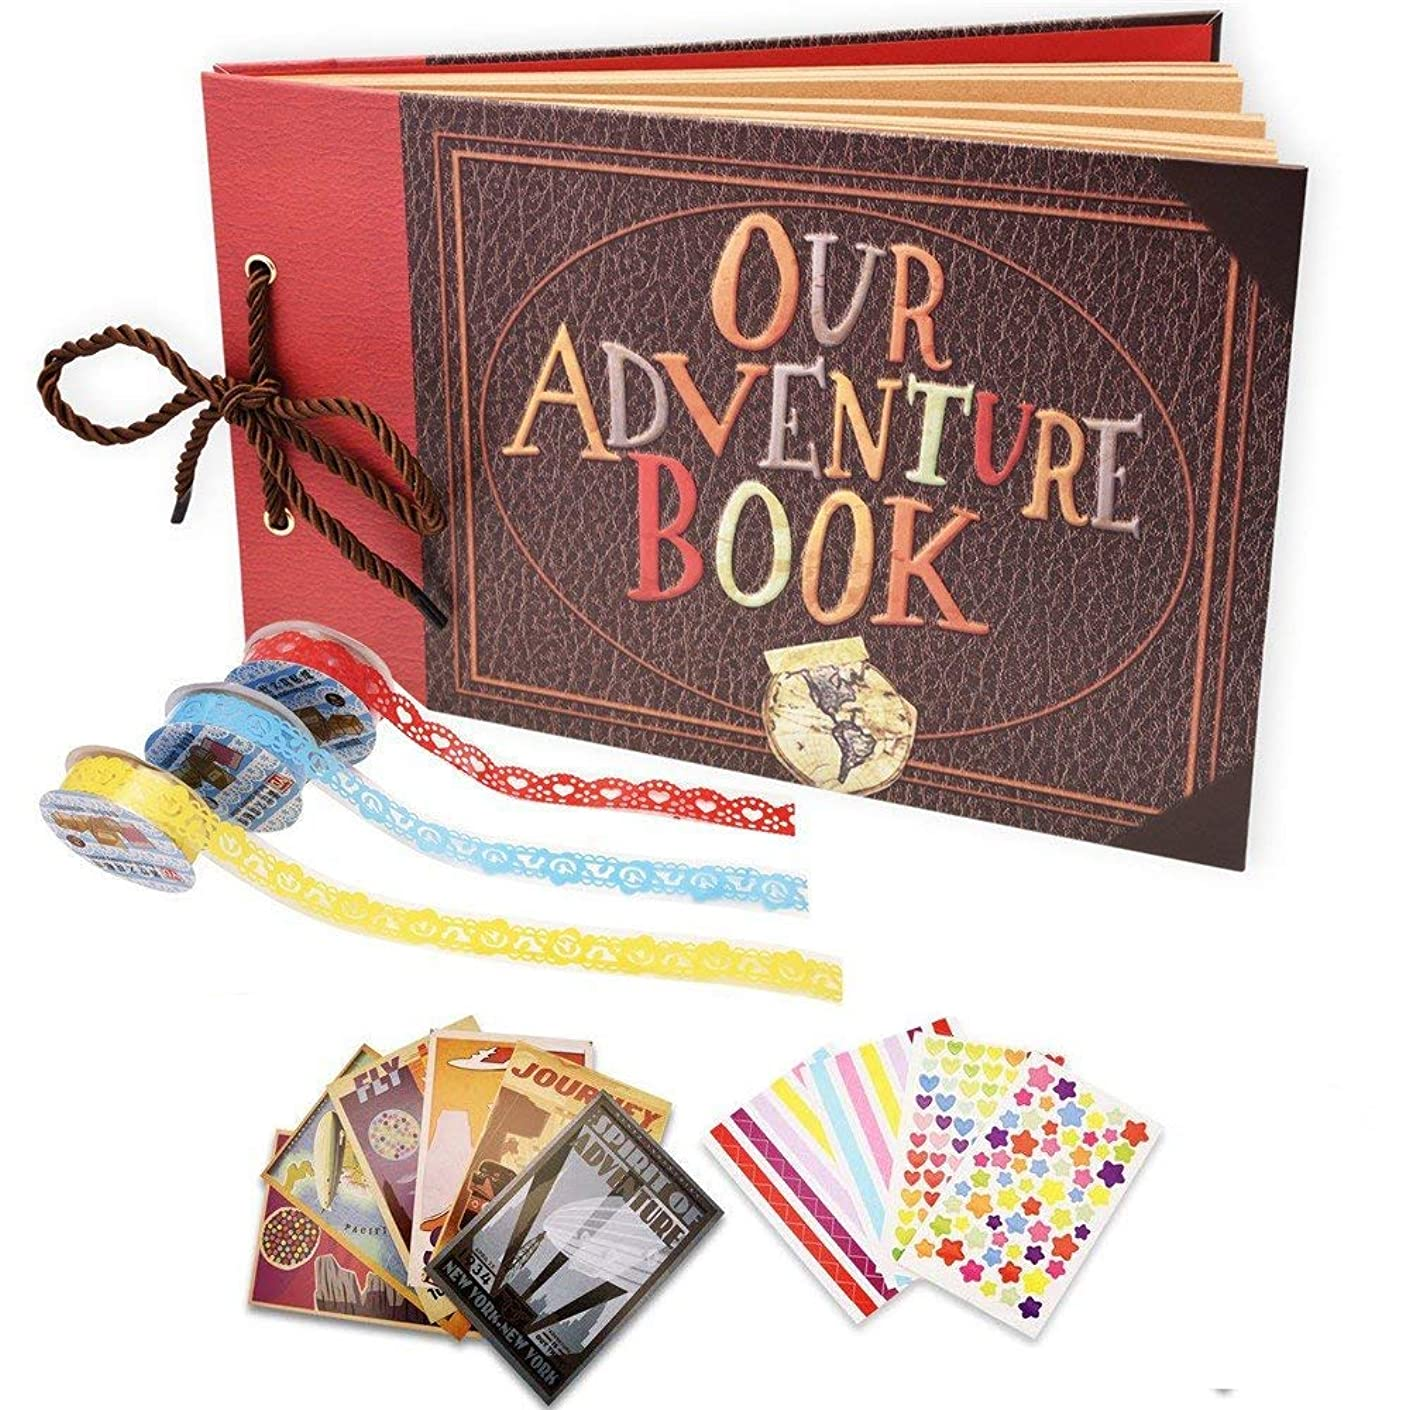 DEBON Our Adventure Book Scrapbook Photo Album Handmade DIY Scrapbook Album Expandable 80 Pages with Accessories Kit Wonderful Gift for Family Anniversary Wedding Birthday Thanksgiving Day